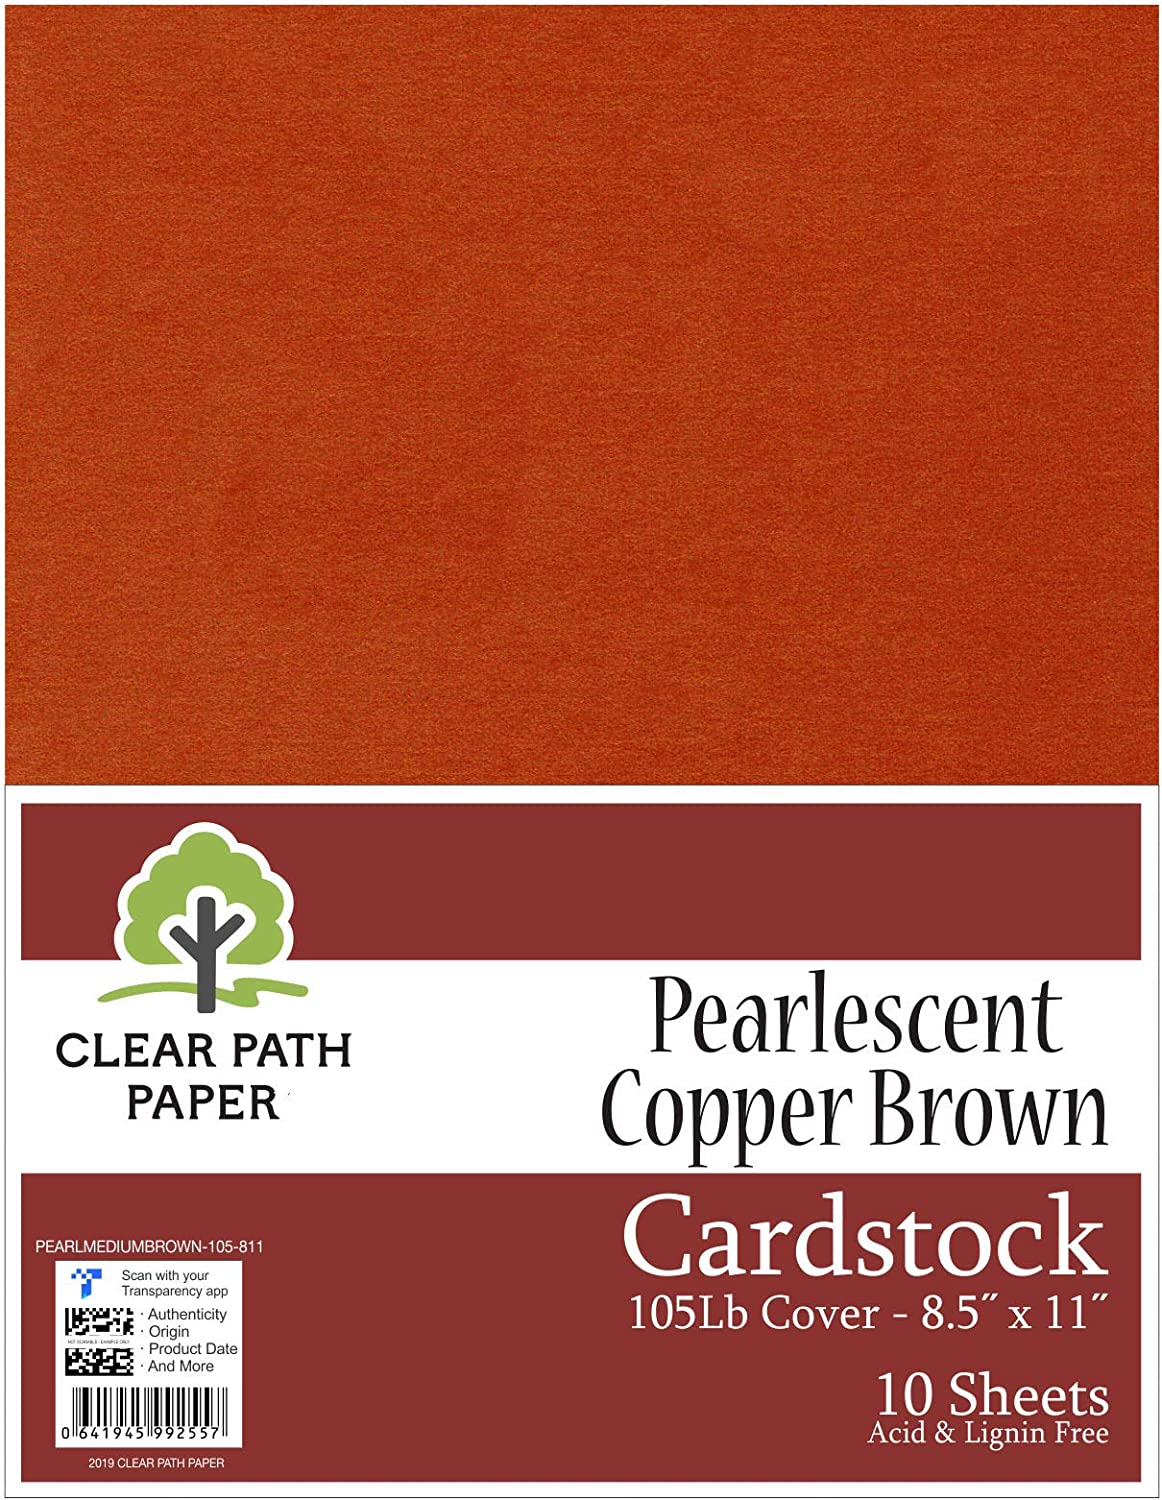 Clear Path Paper Pearl Shimmer Metallic Brick Red Cardstock 105Lb Cover 8.5 x 11 inch 10 Sheets